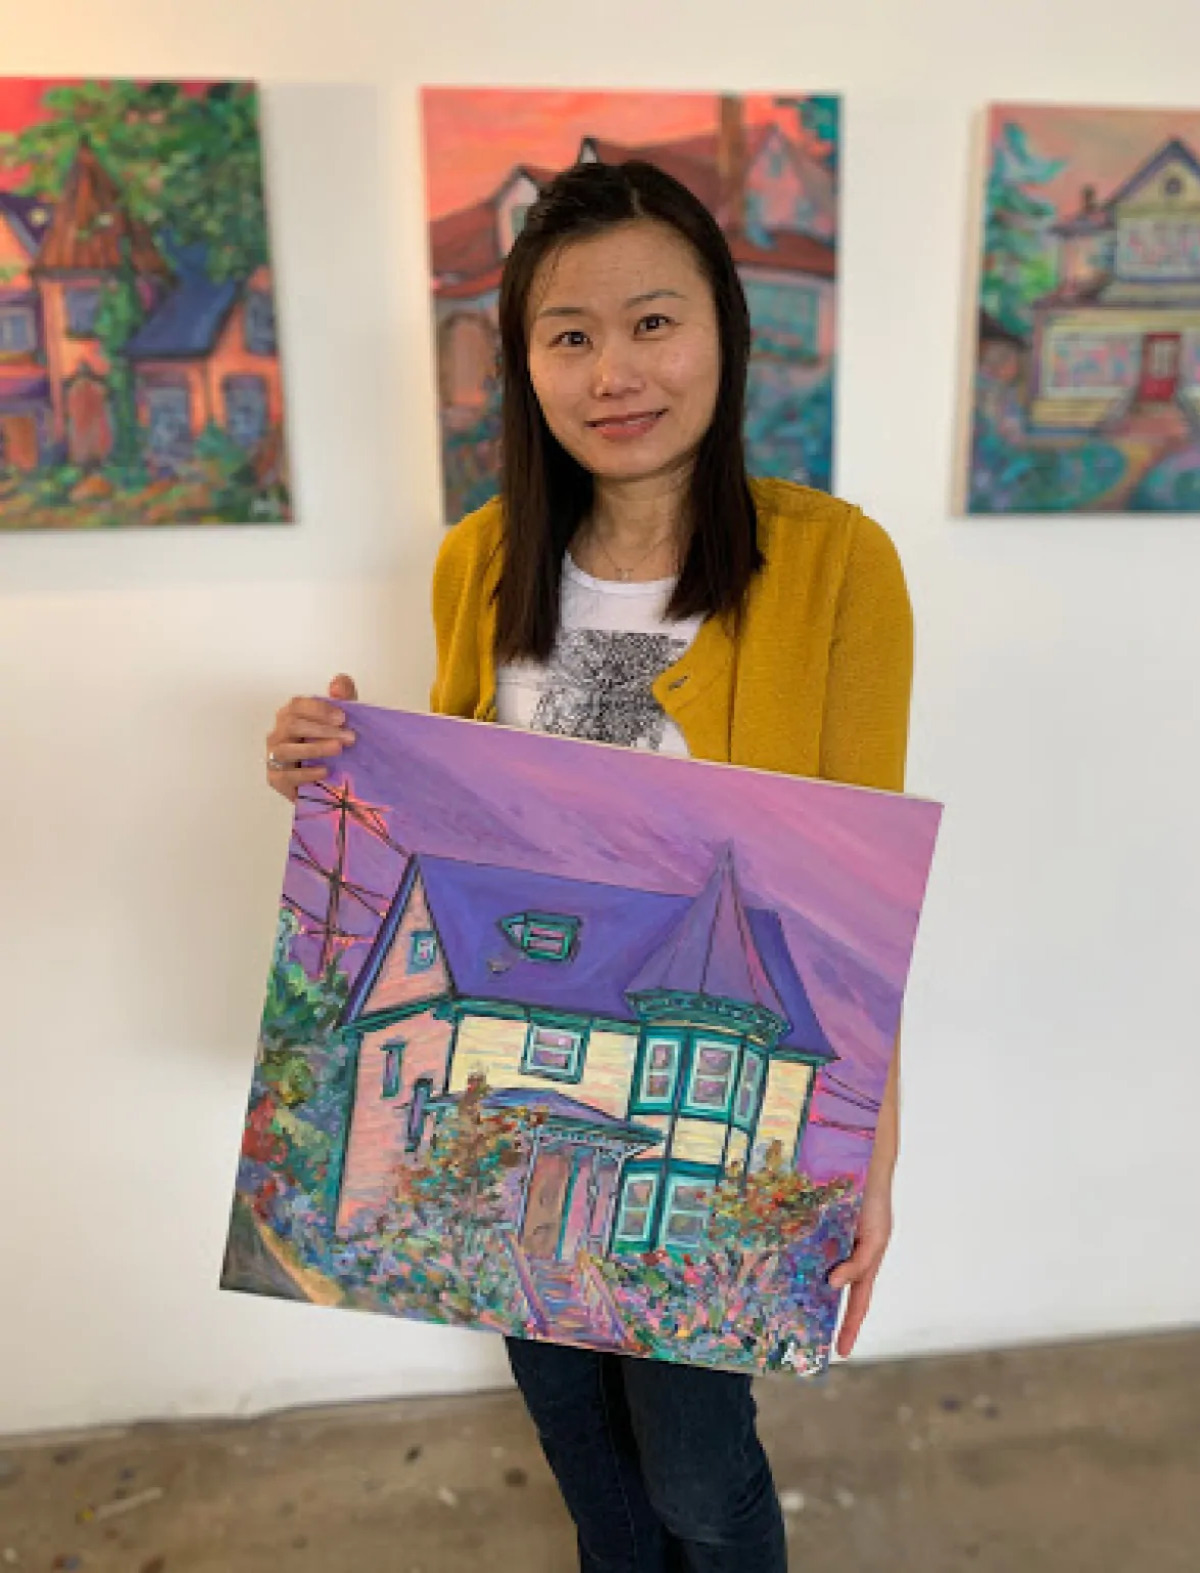 Aeris Osborne holding one of her paintings